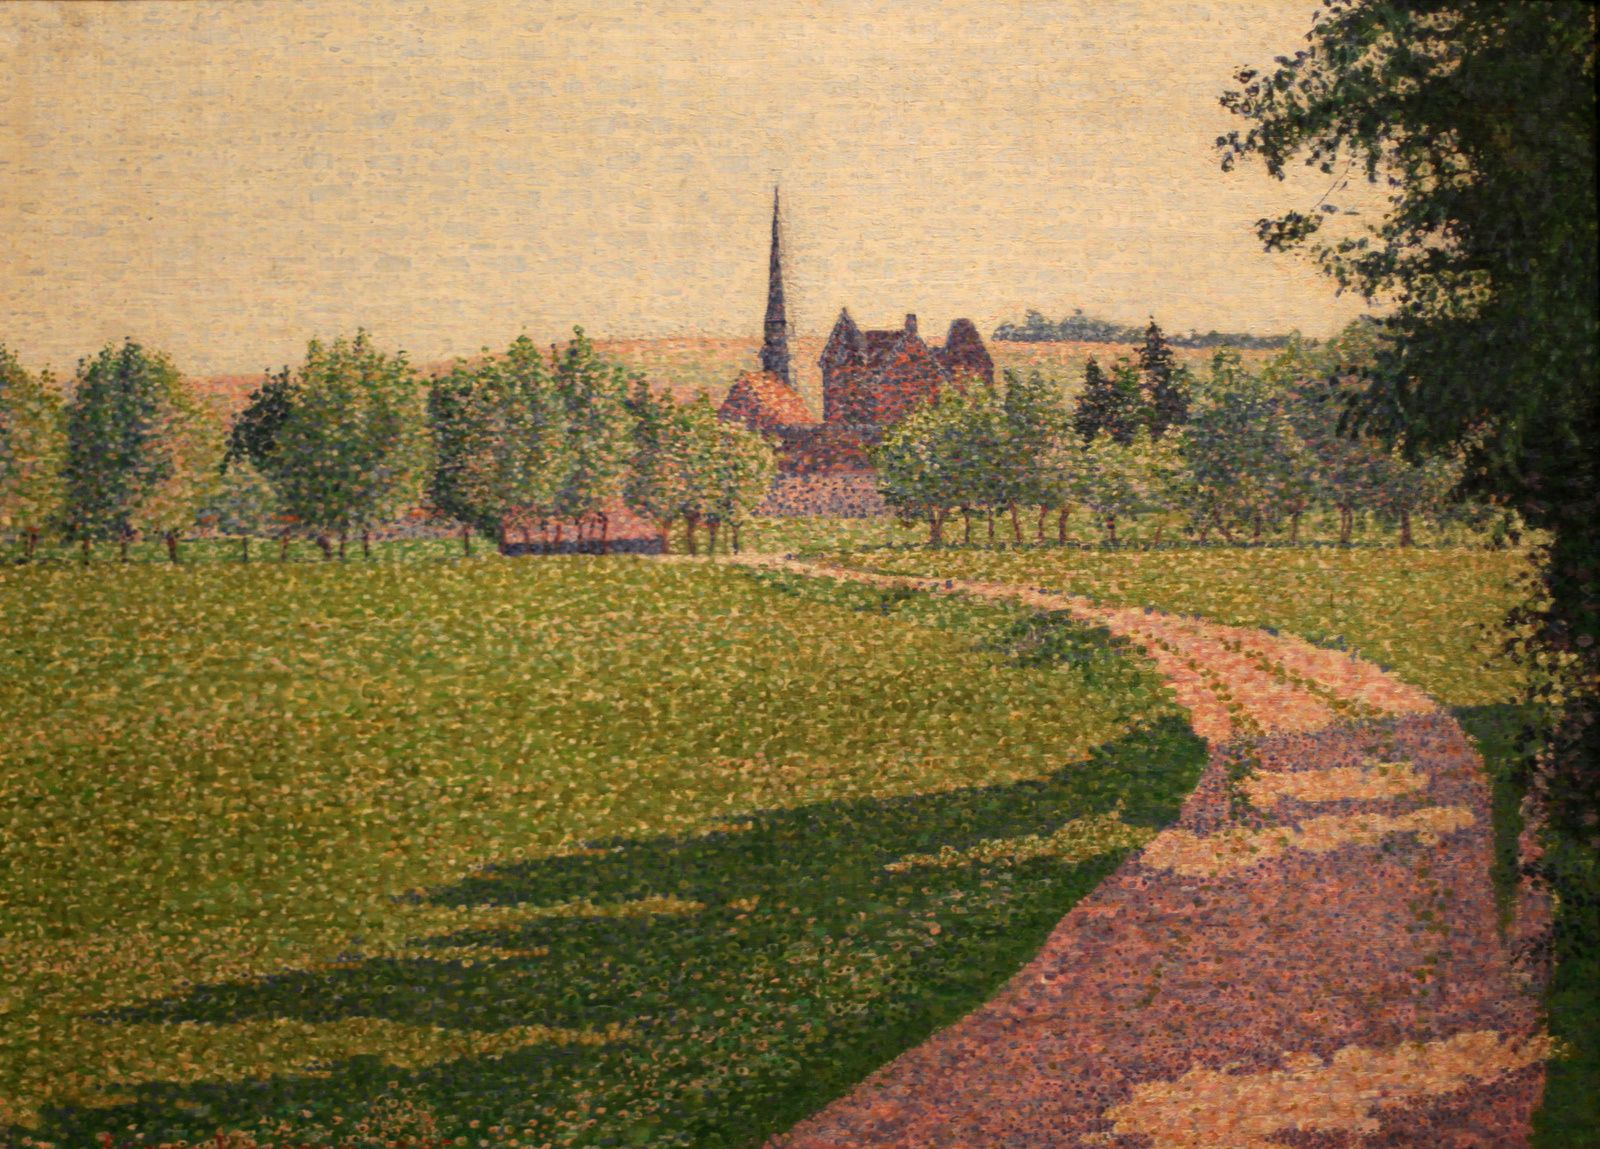 """L'Église d'Éragny"", 1886 de Lucien PISSARRO - Courtesy Ashmolean Museum, University of Oxford © Photo Éric Simon"